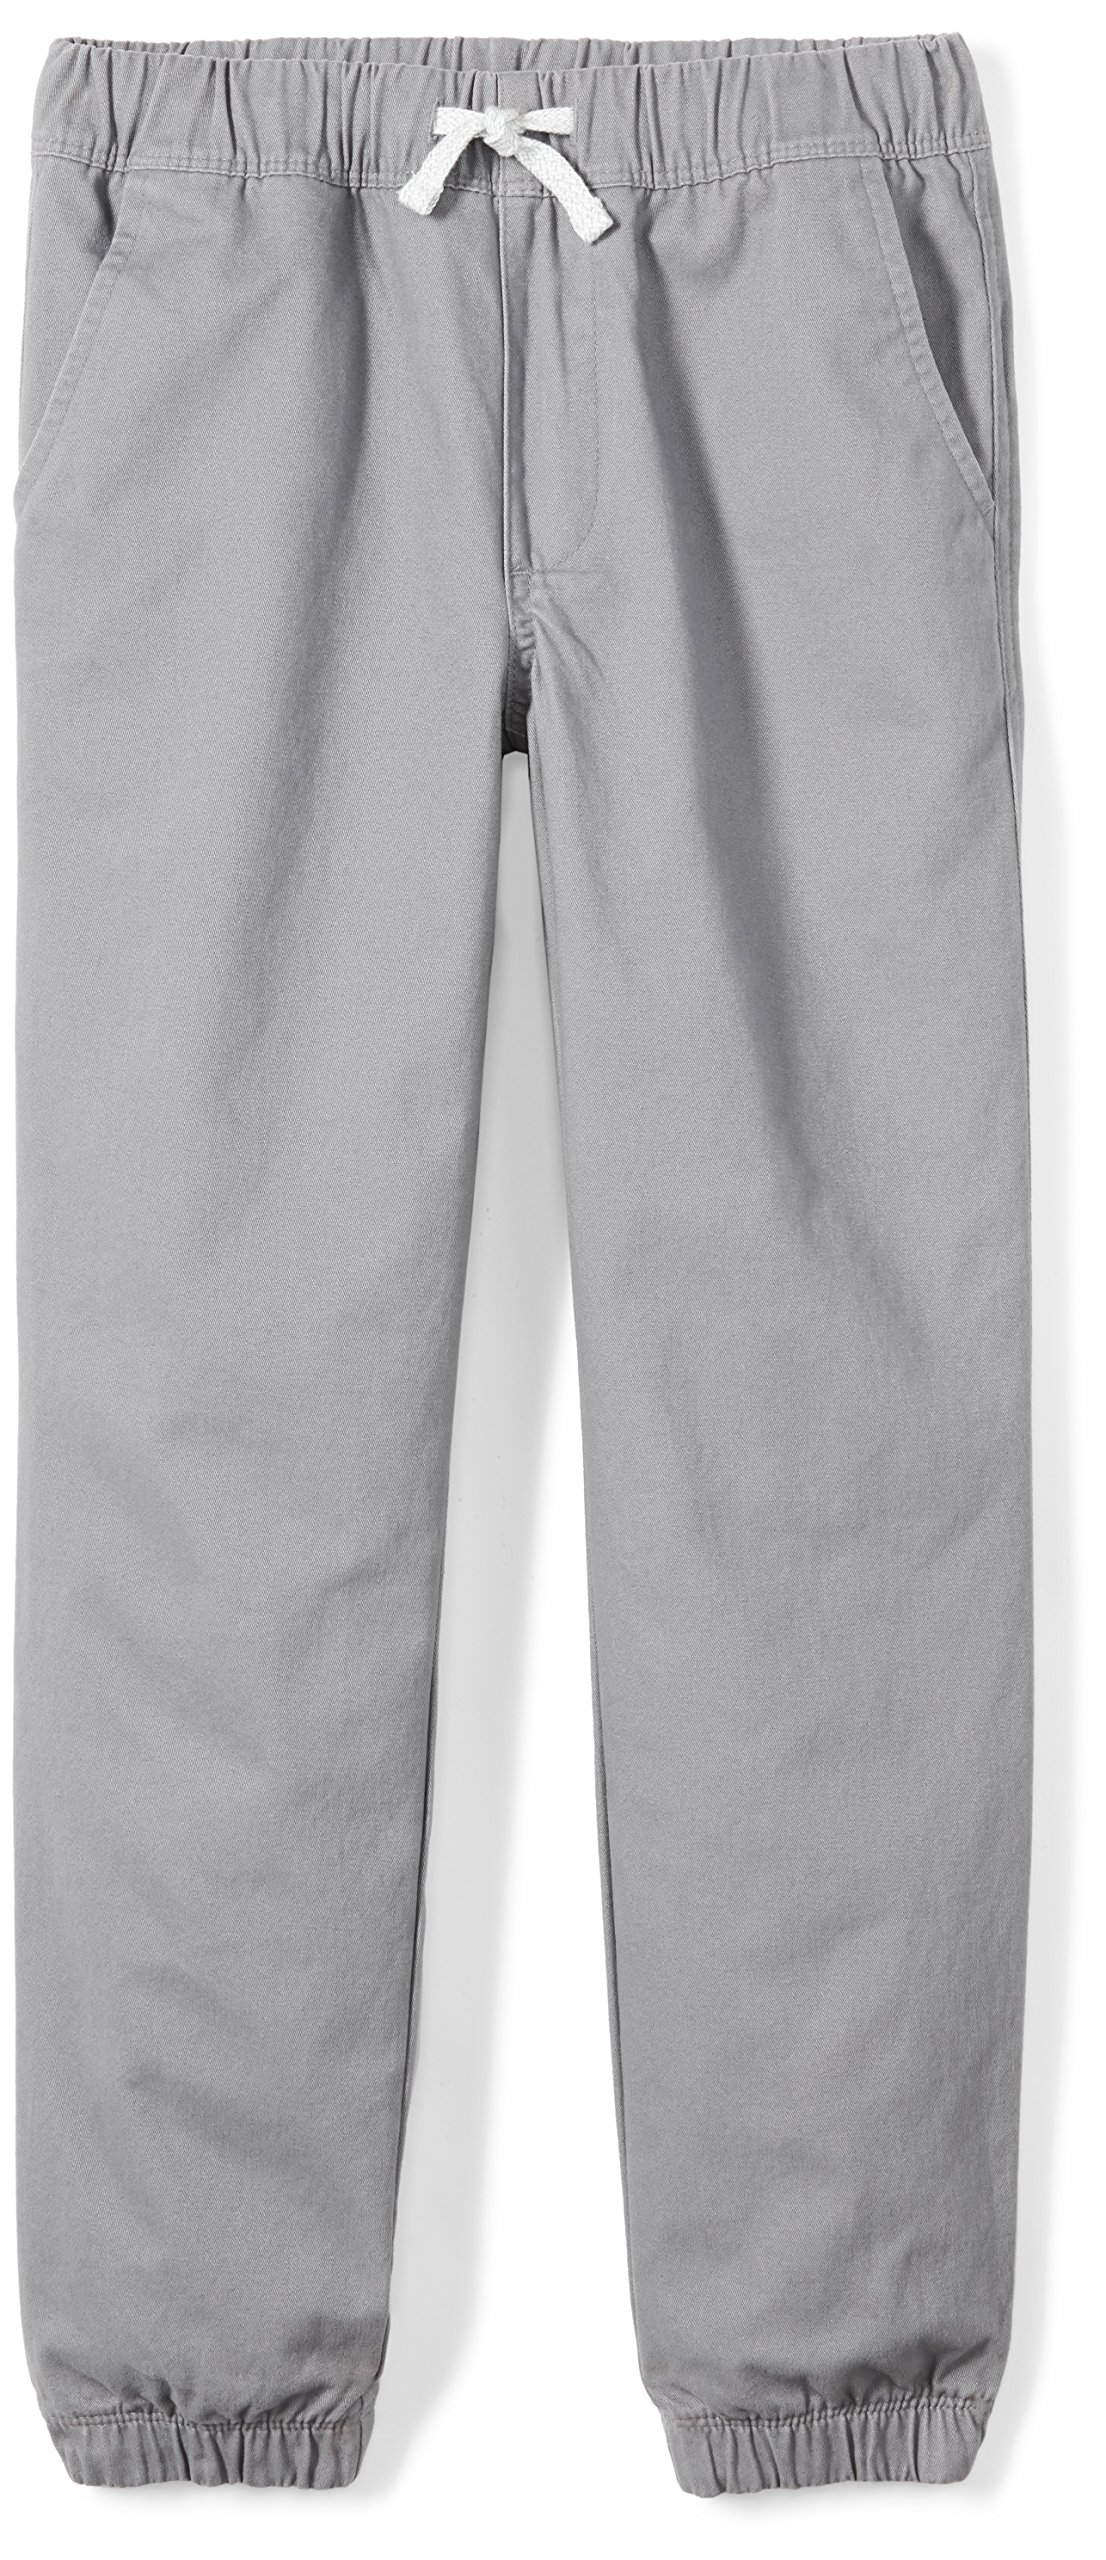 Spotted Zebra Little Boys' Woven Jogger Pants, Grey, Small (6-7)